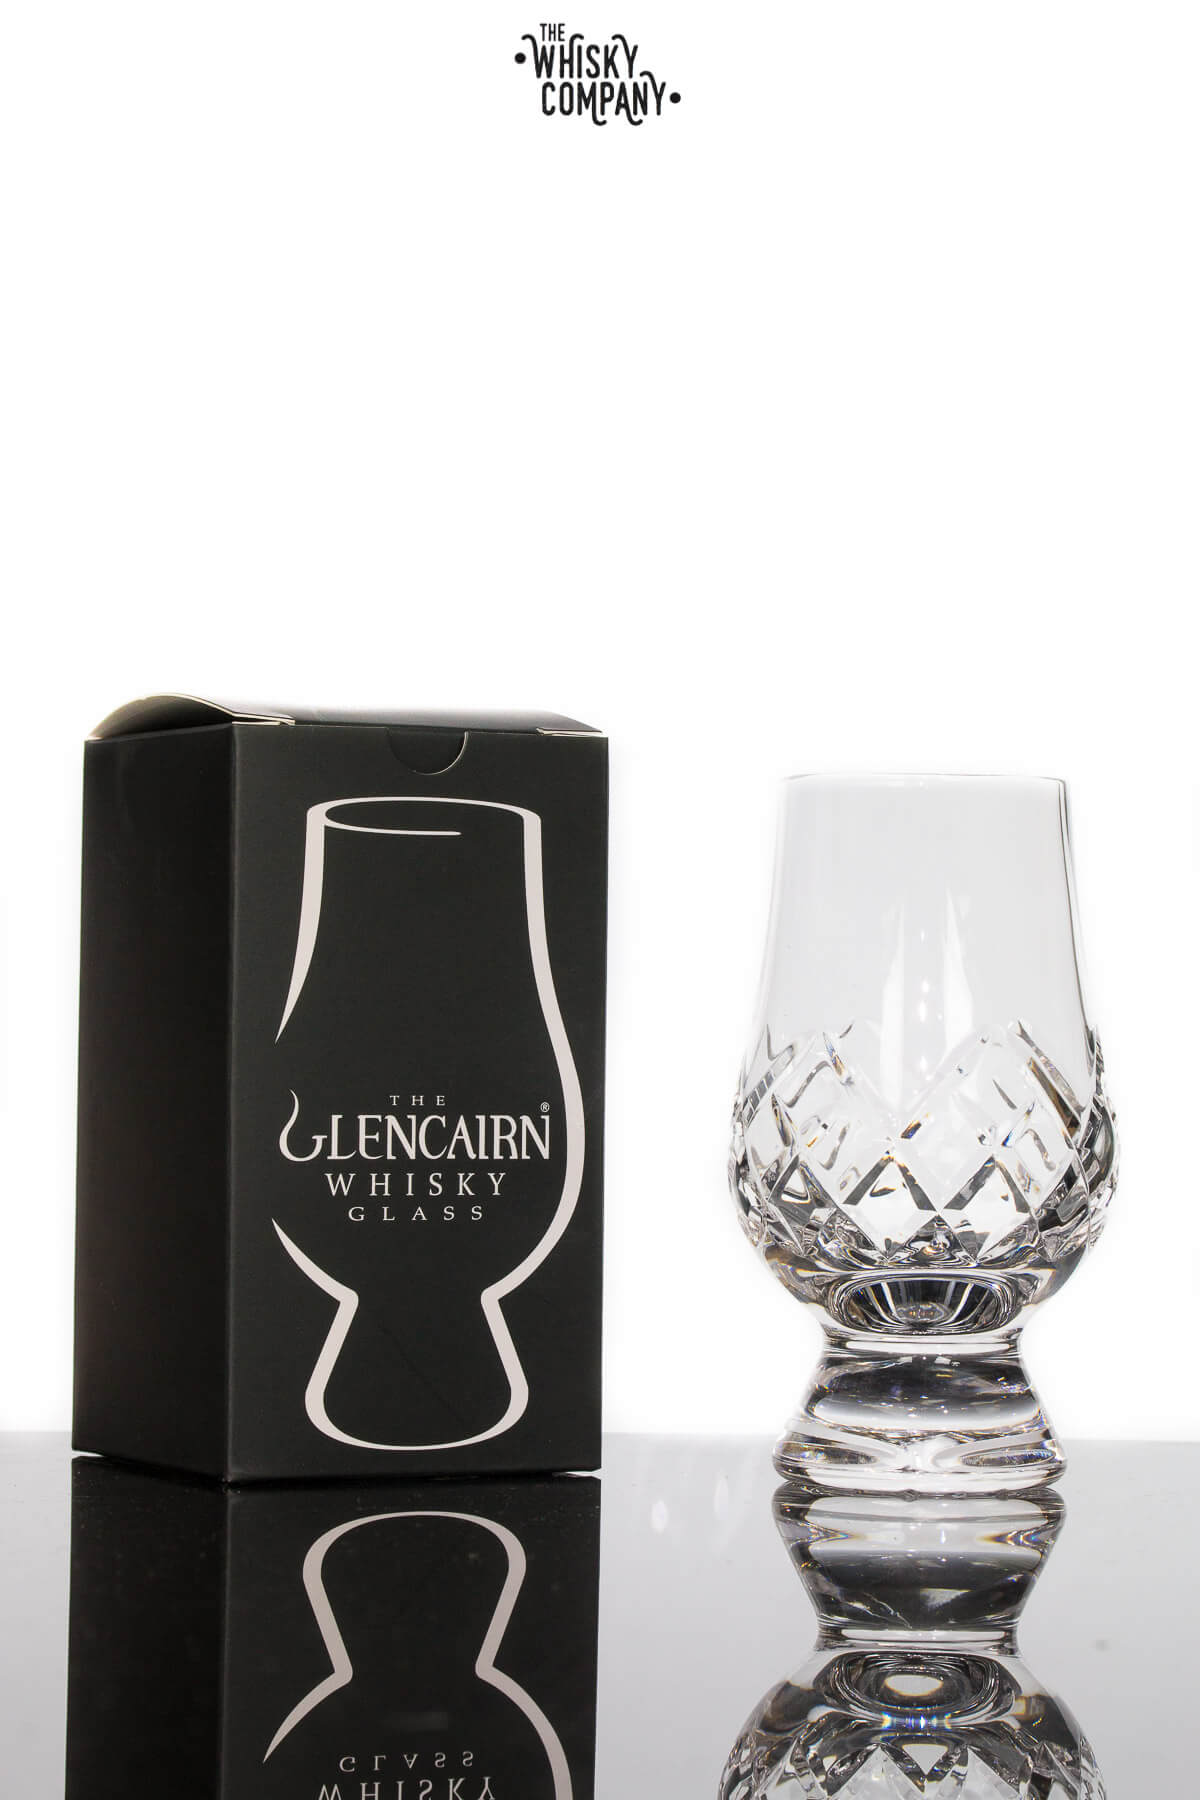 Glencairn Cut Crystal Glass In Presentation Box